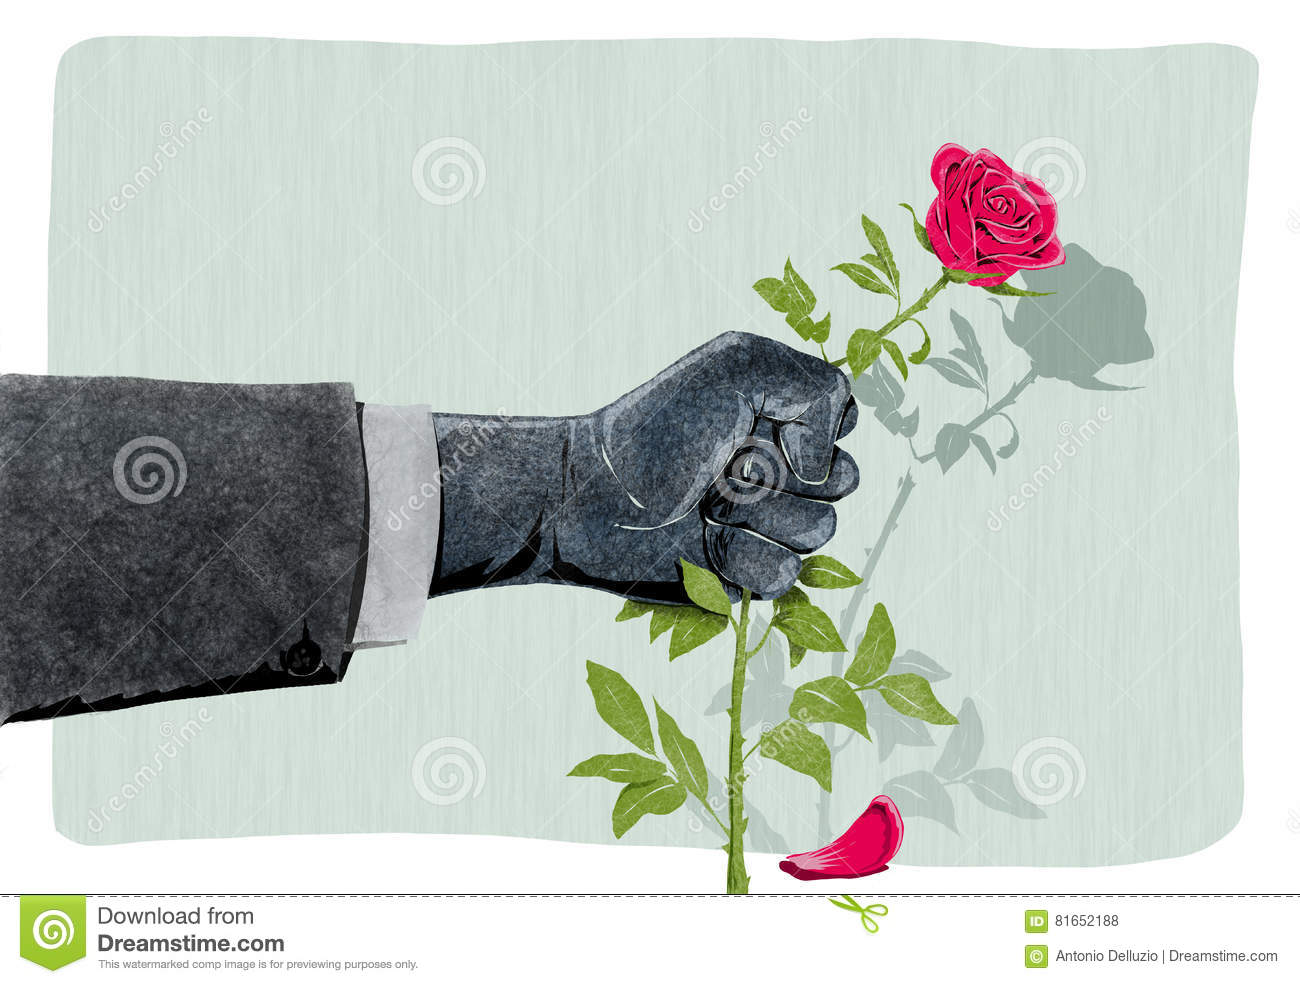 Illustration of hand that breaks a rose as a symbol of violence illustration of hand that breaks a rose as a symbol of violence against women buycottarizona Choice Image